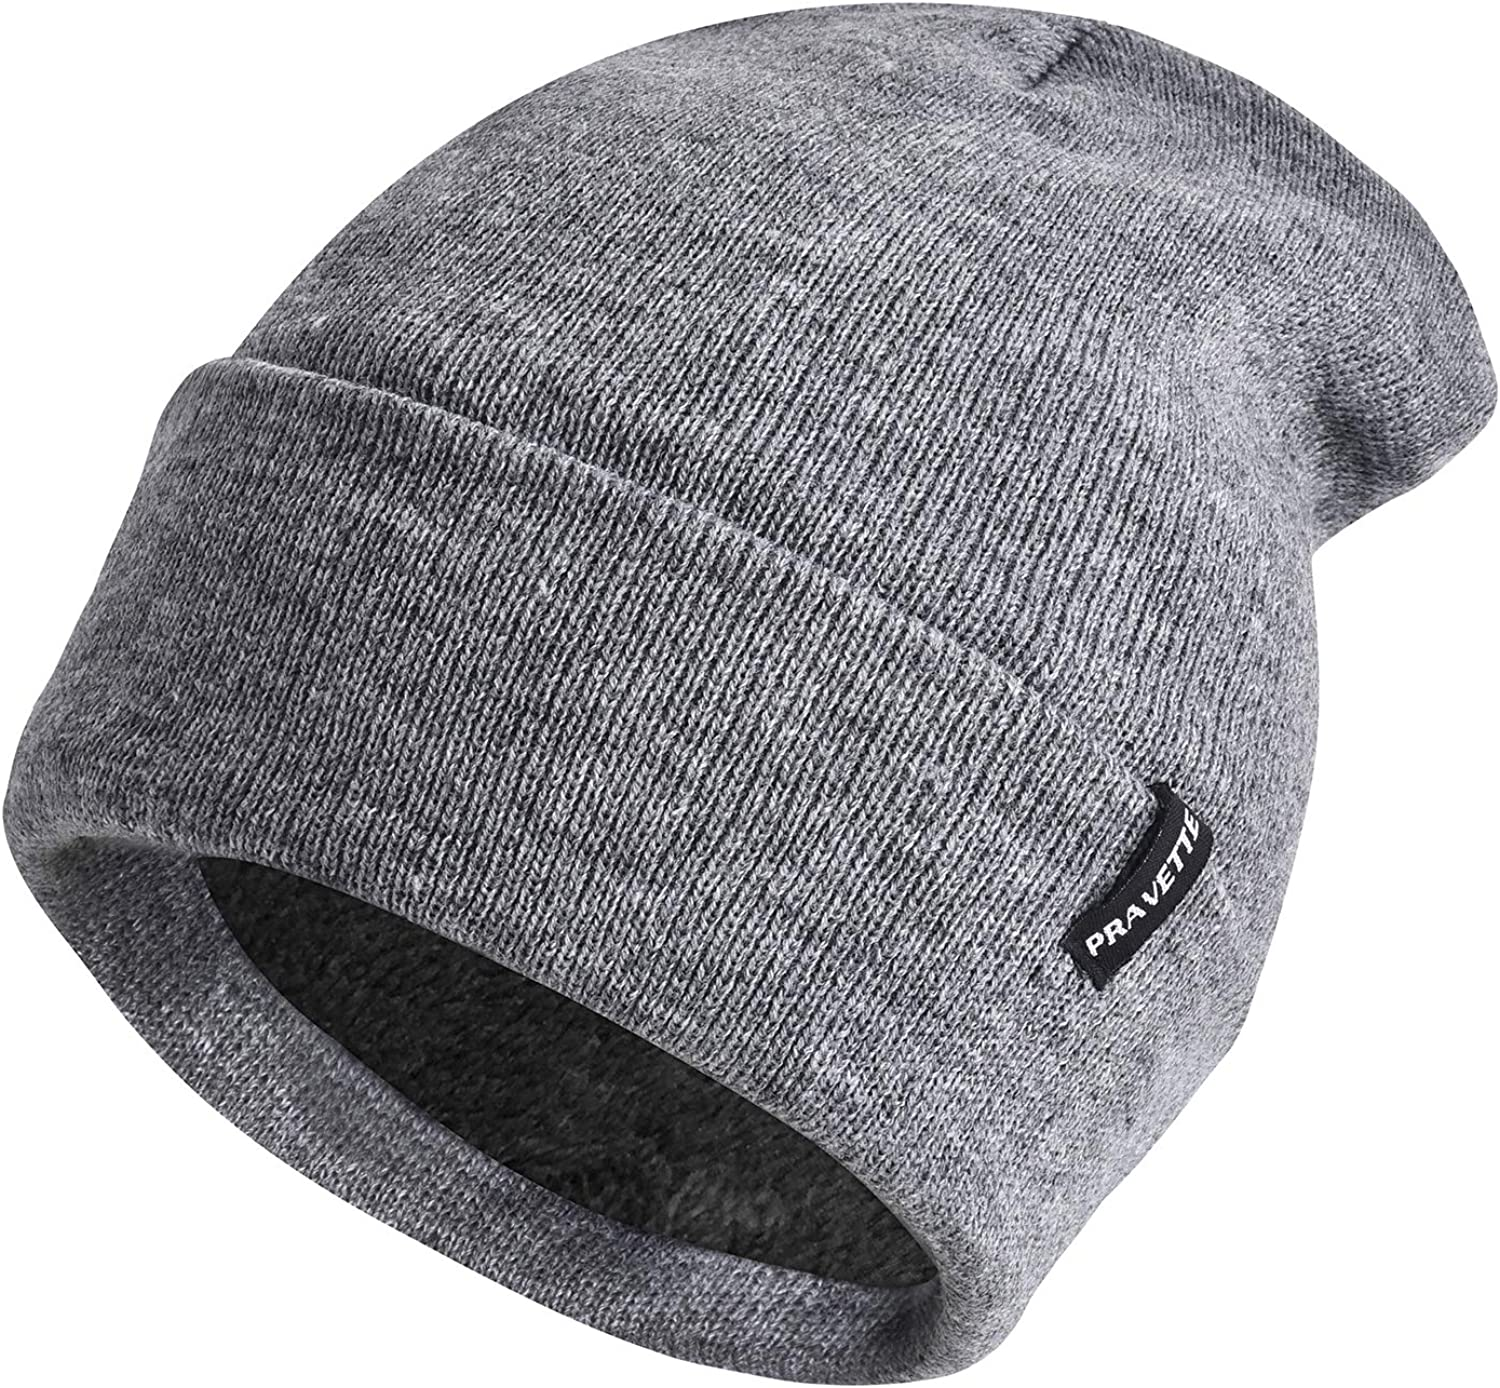 PRAVETTE Winter Beanie Hat with Soldering Warm Max 85% OFF Lining - Knit Hats S Unisex